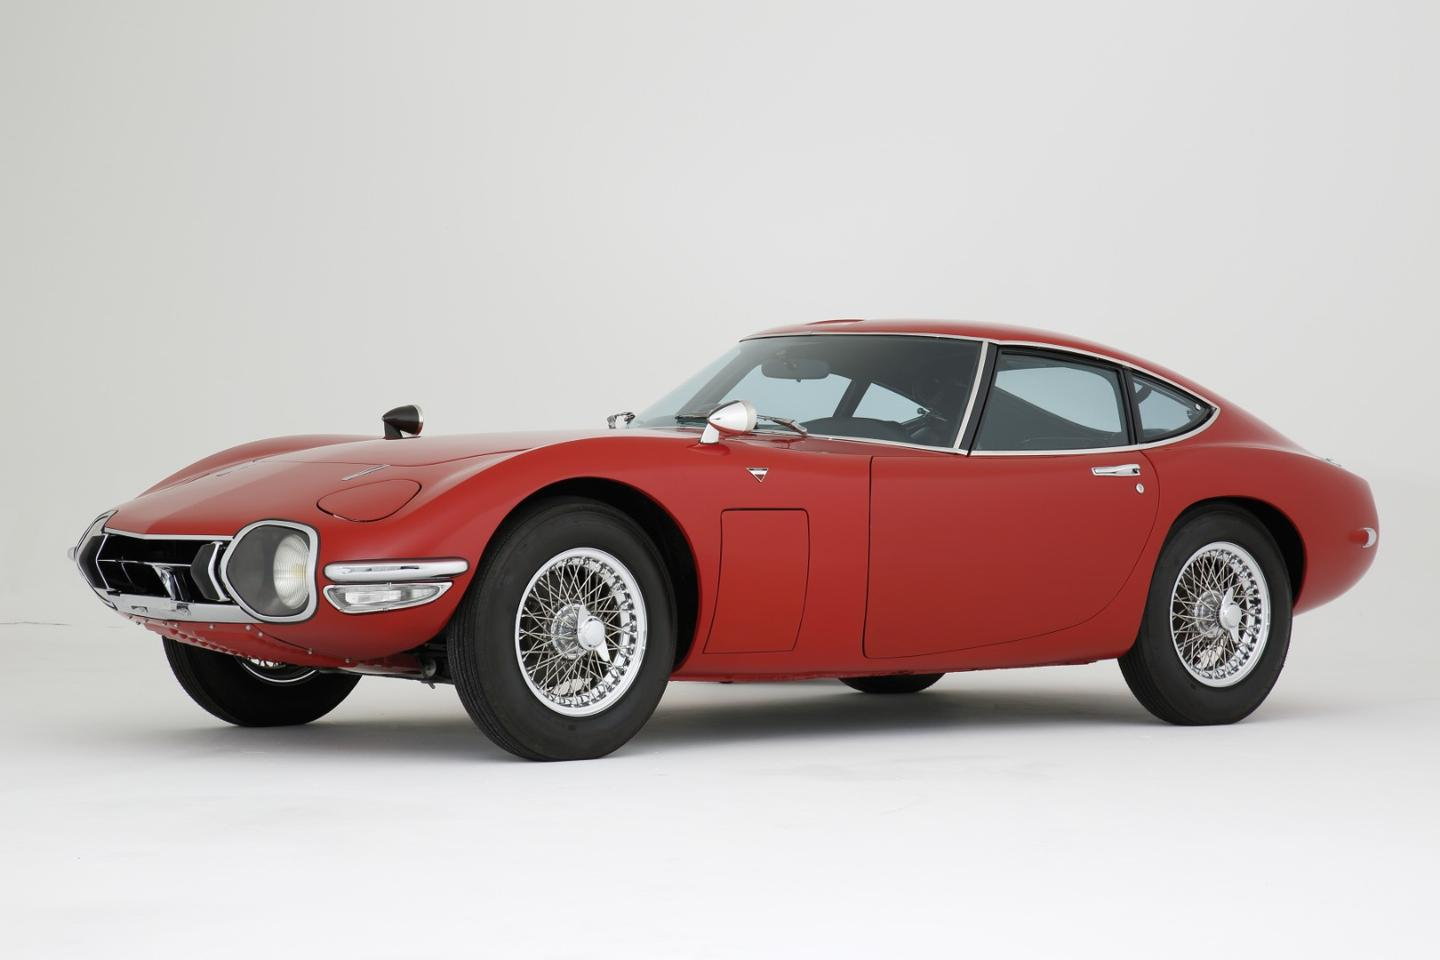 RM-Sothebys  sold this 1968 Toyota 2000GT for $1,001,844 (€728.000) at its  Monaco, 2014 auction